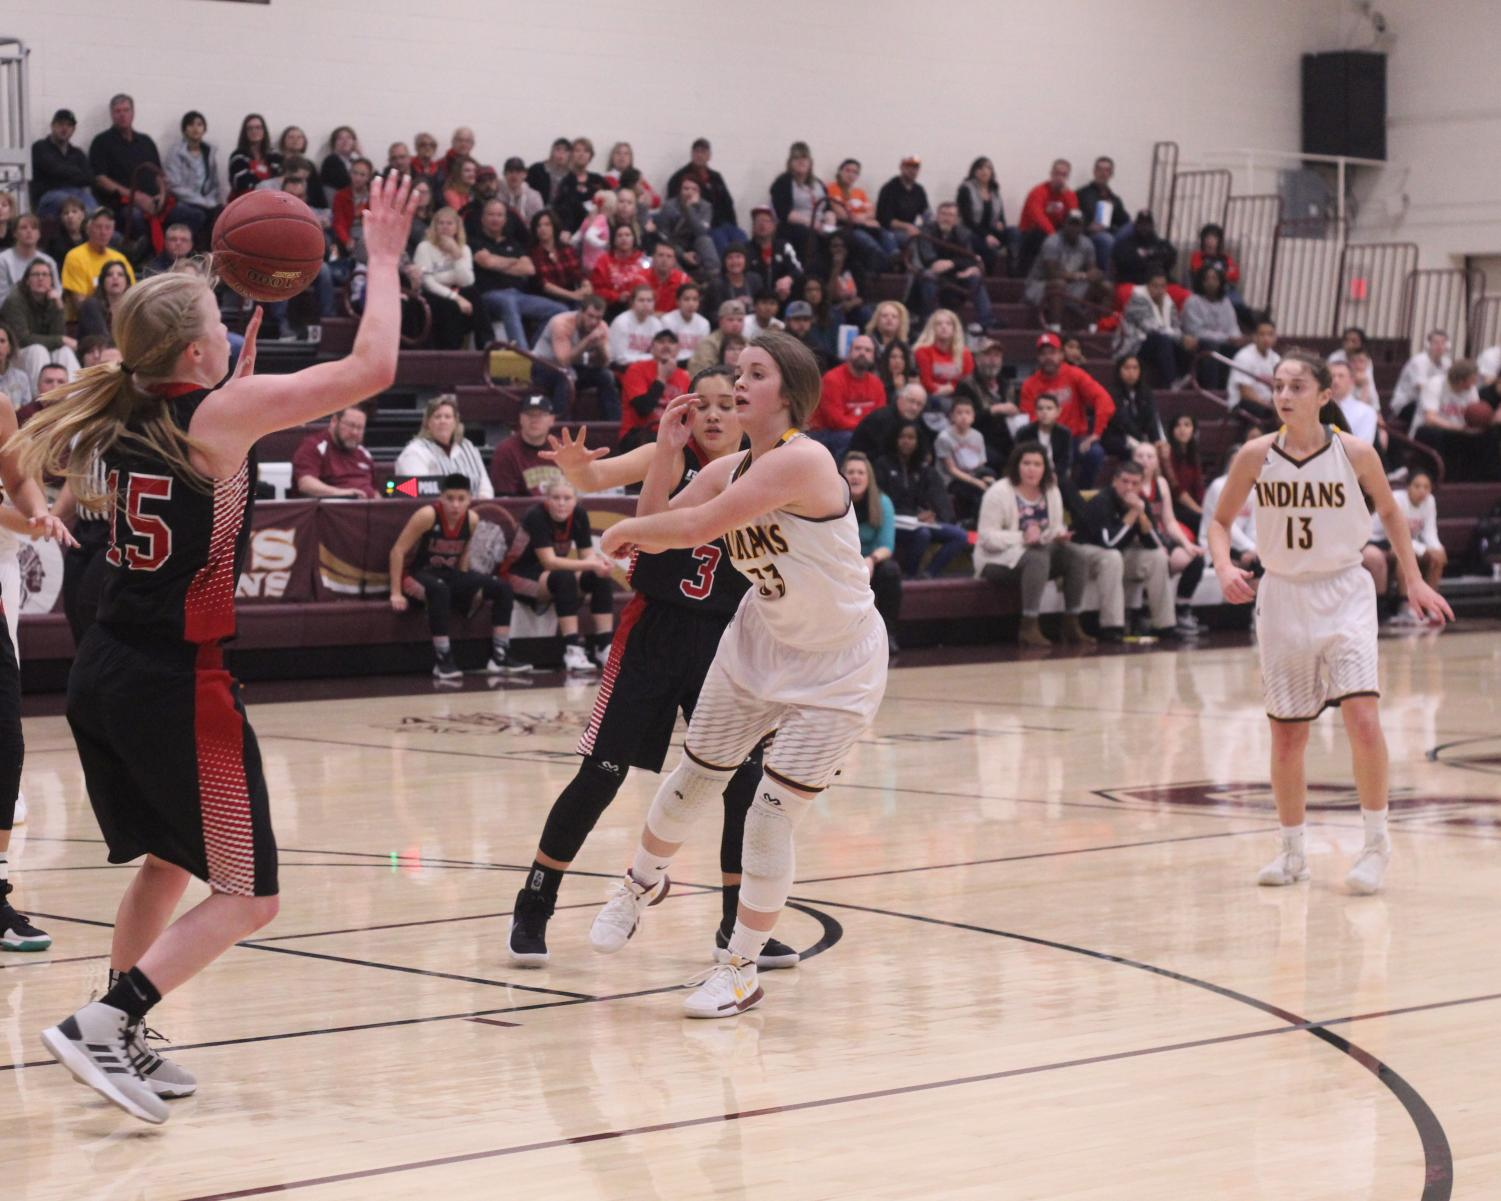 Sophmore Brooke Denning goes up for a lay up in a recent game against the Liberal Redskins. The Indians would go on to beat the Redskins 48-41.